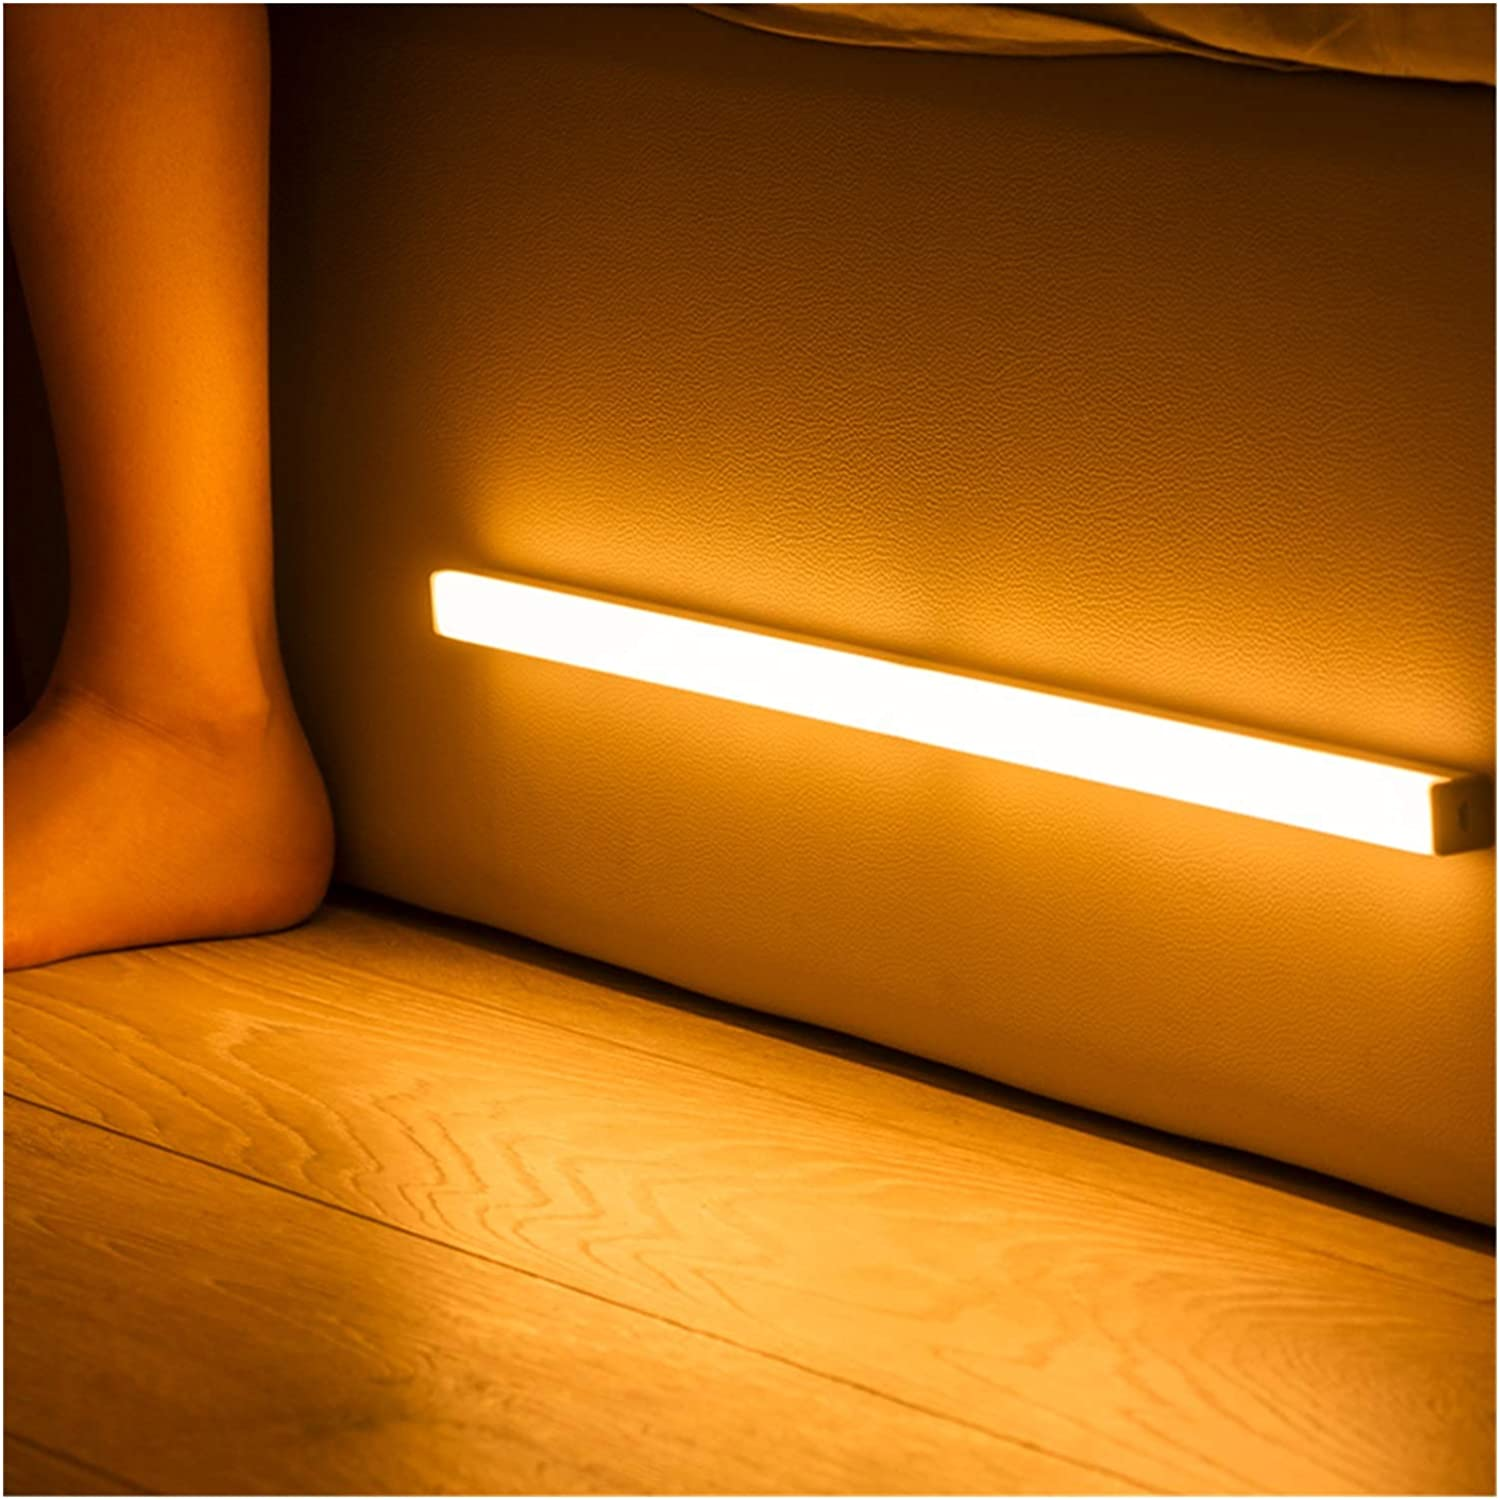 ZLMAY LED Night Max 69% OFF Light Motion Wireless 40 Rechargeable Free Shipping New 20 USB 30